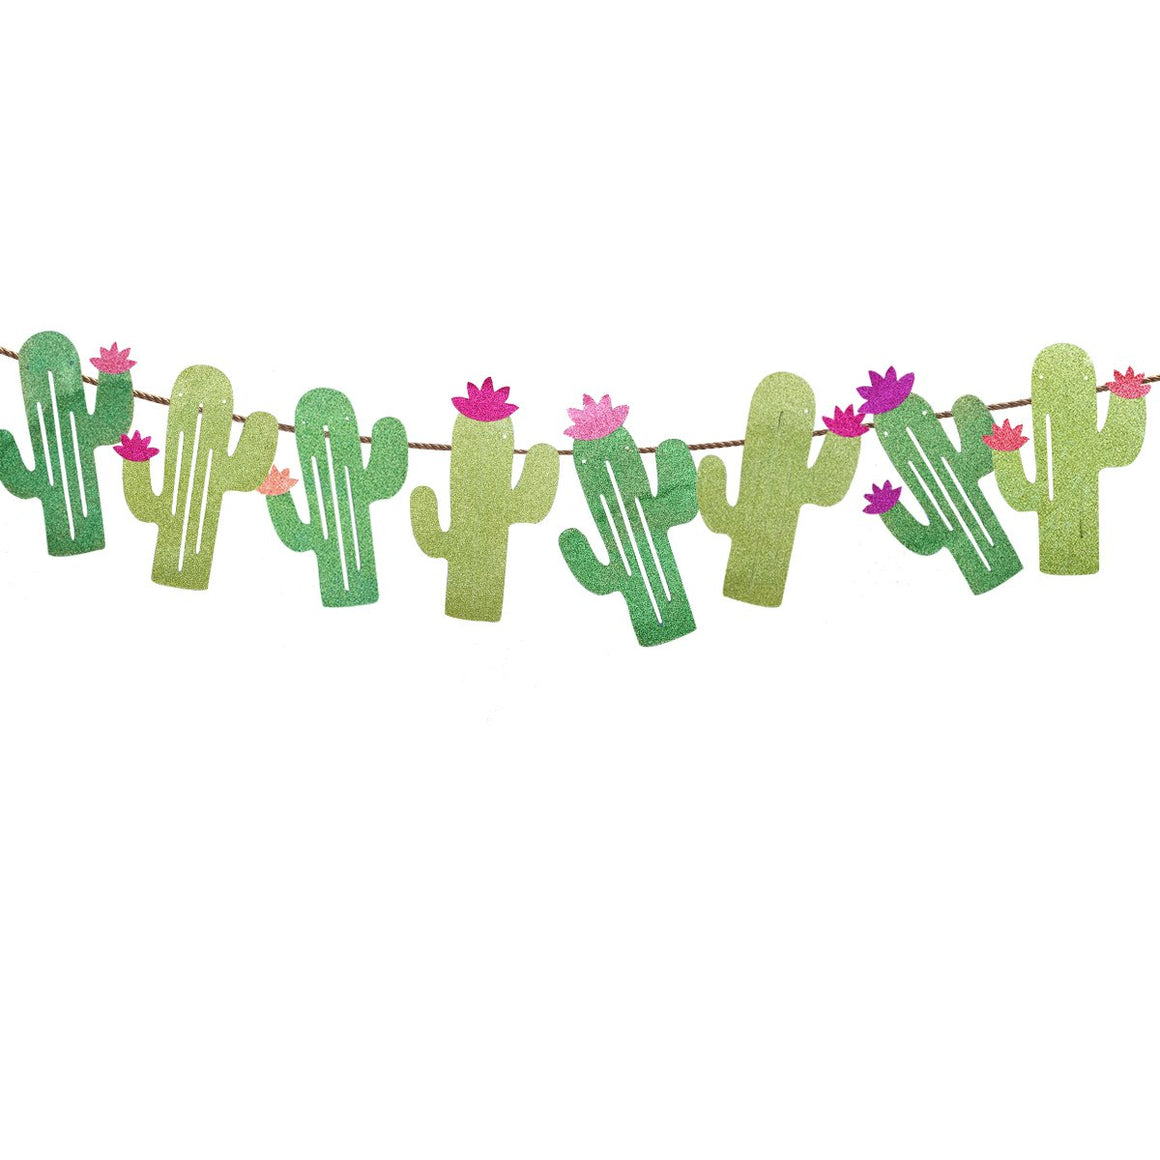 Cactus Party Banner Garland - Popcheeks